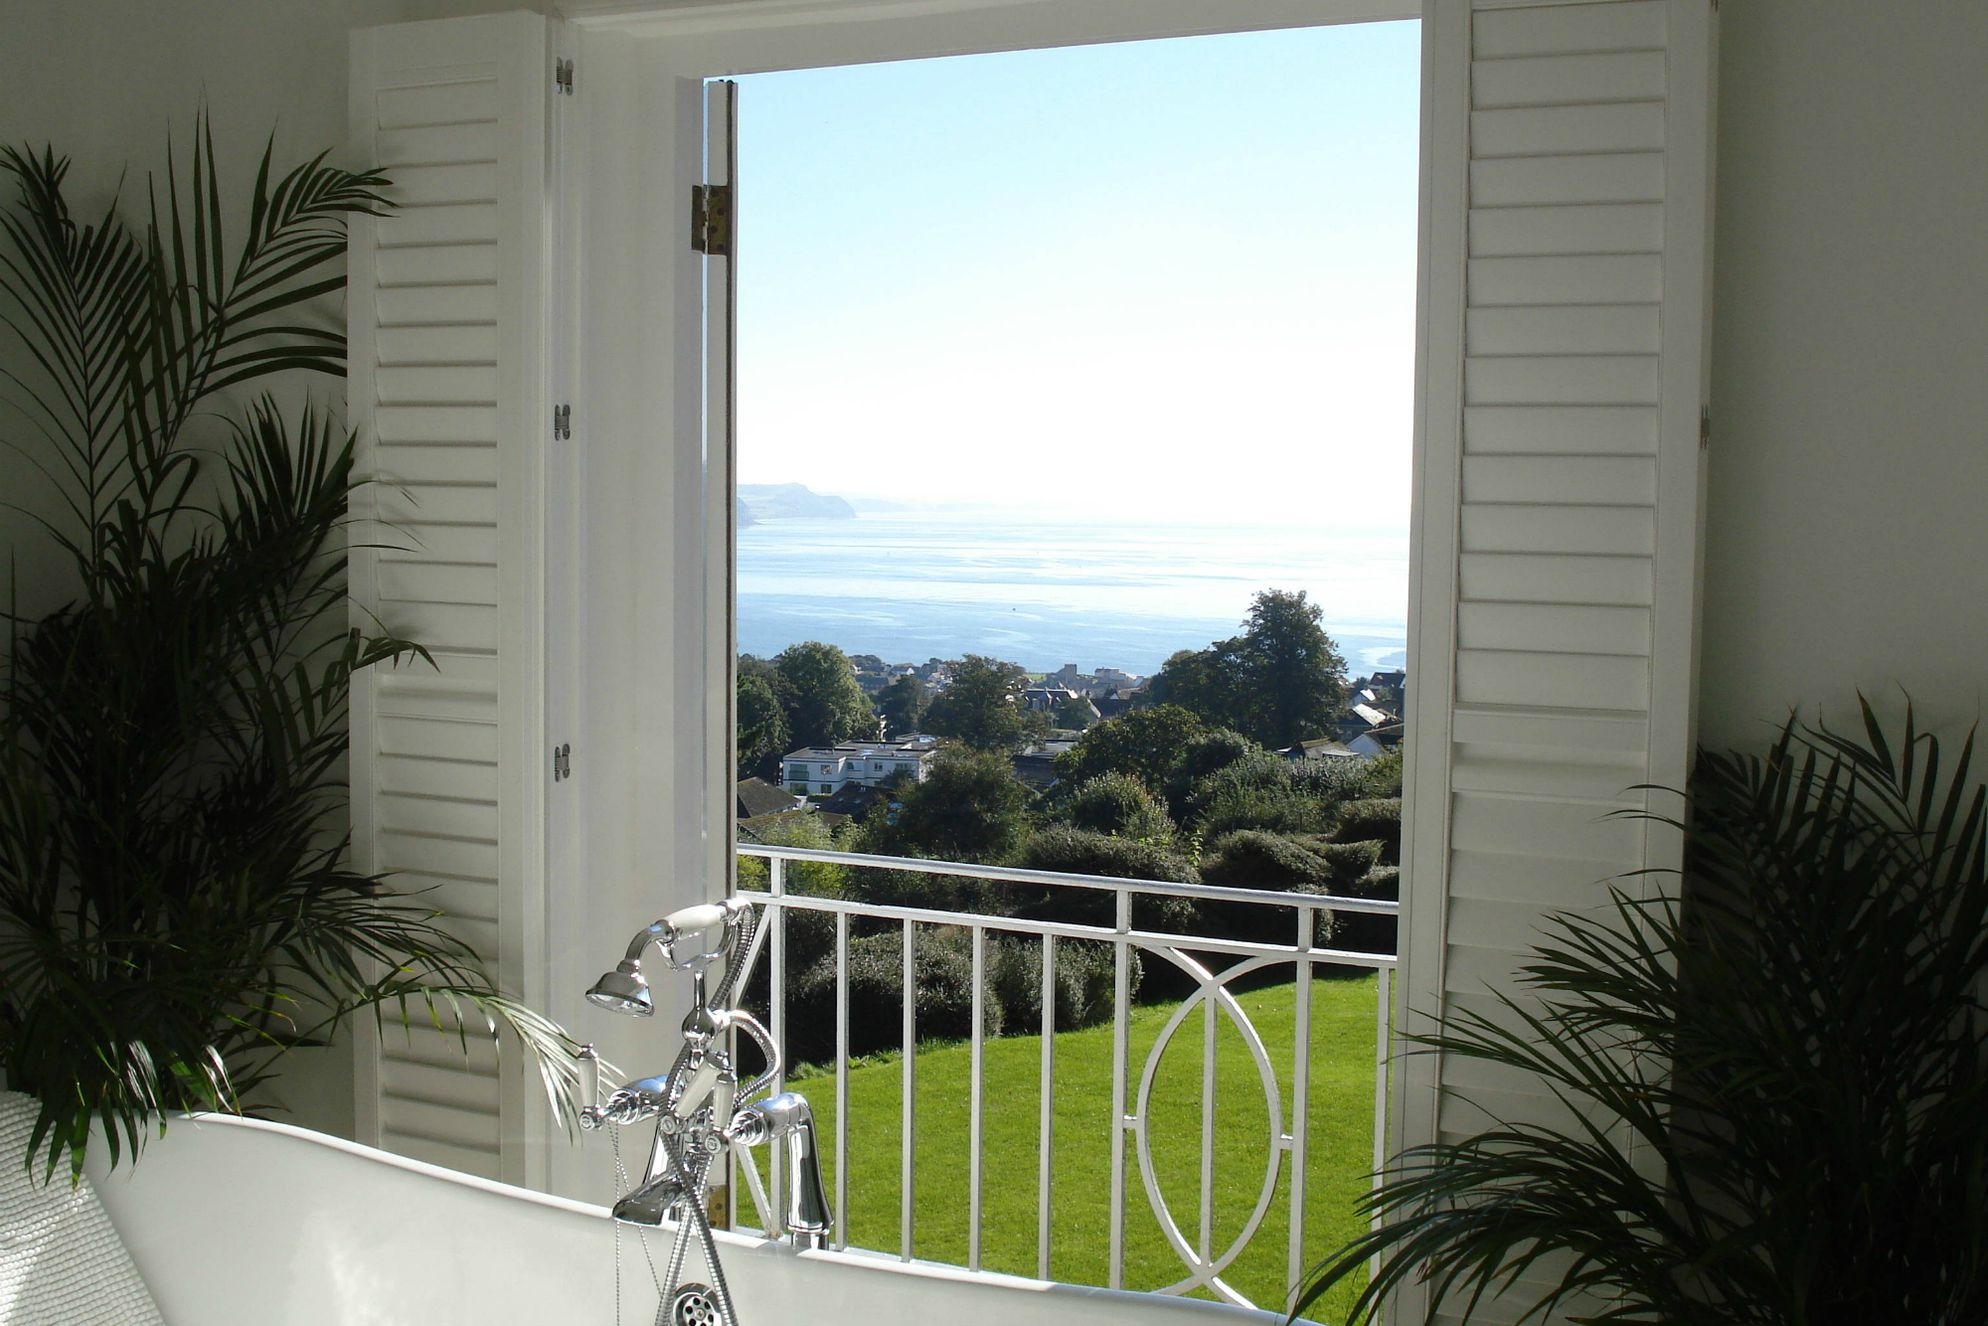 Incredible view of the sea from the luxurious bathtub in the bathroom at Greenhill House in Lyme Regis, Dorset, sitting up on the hill